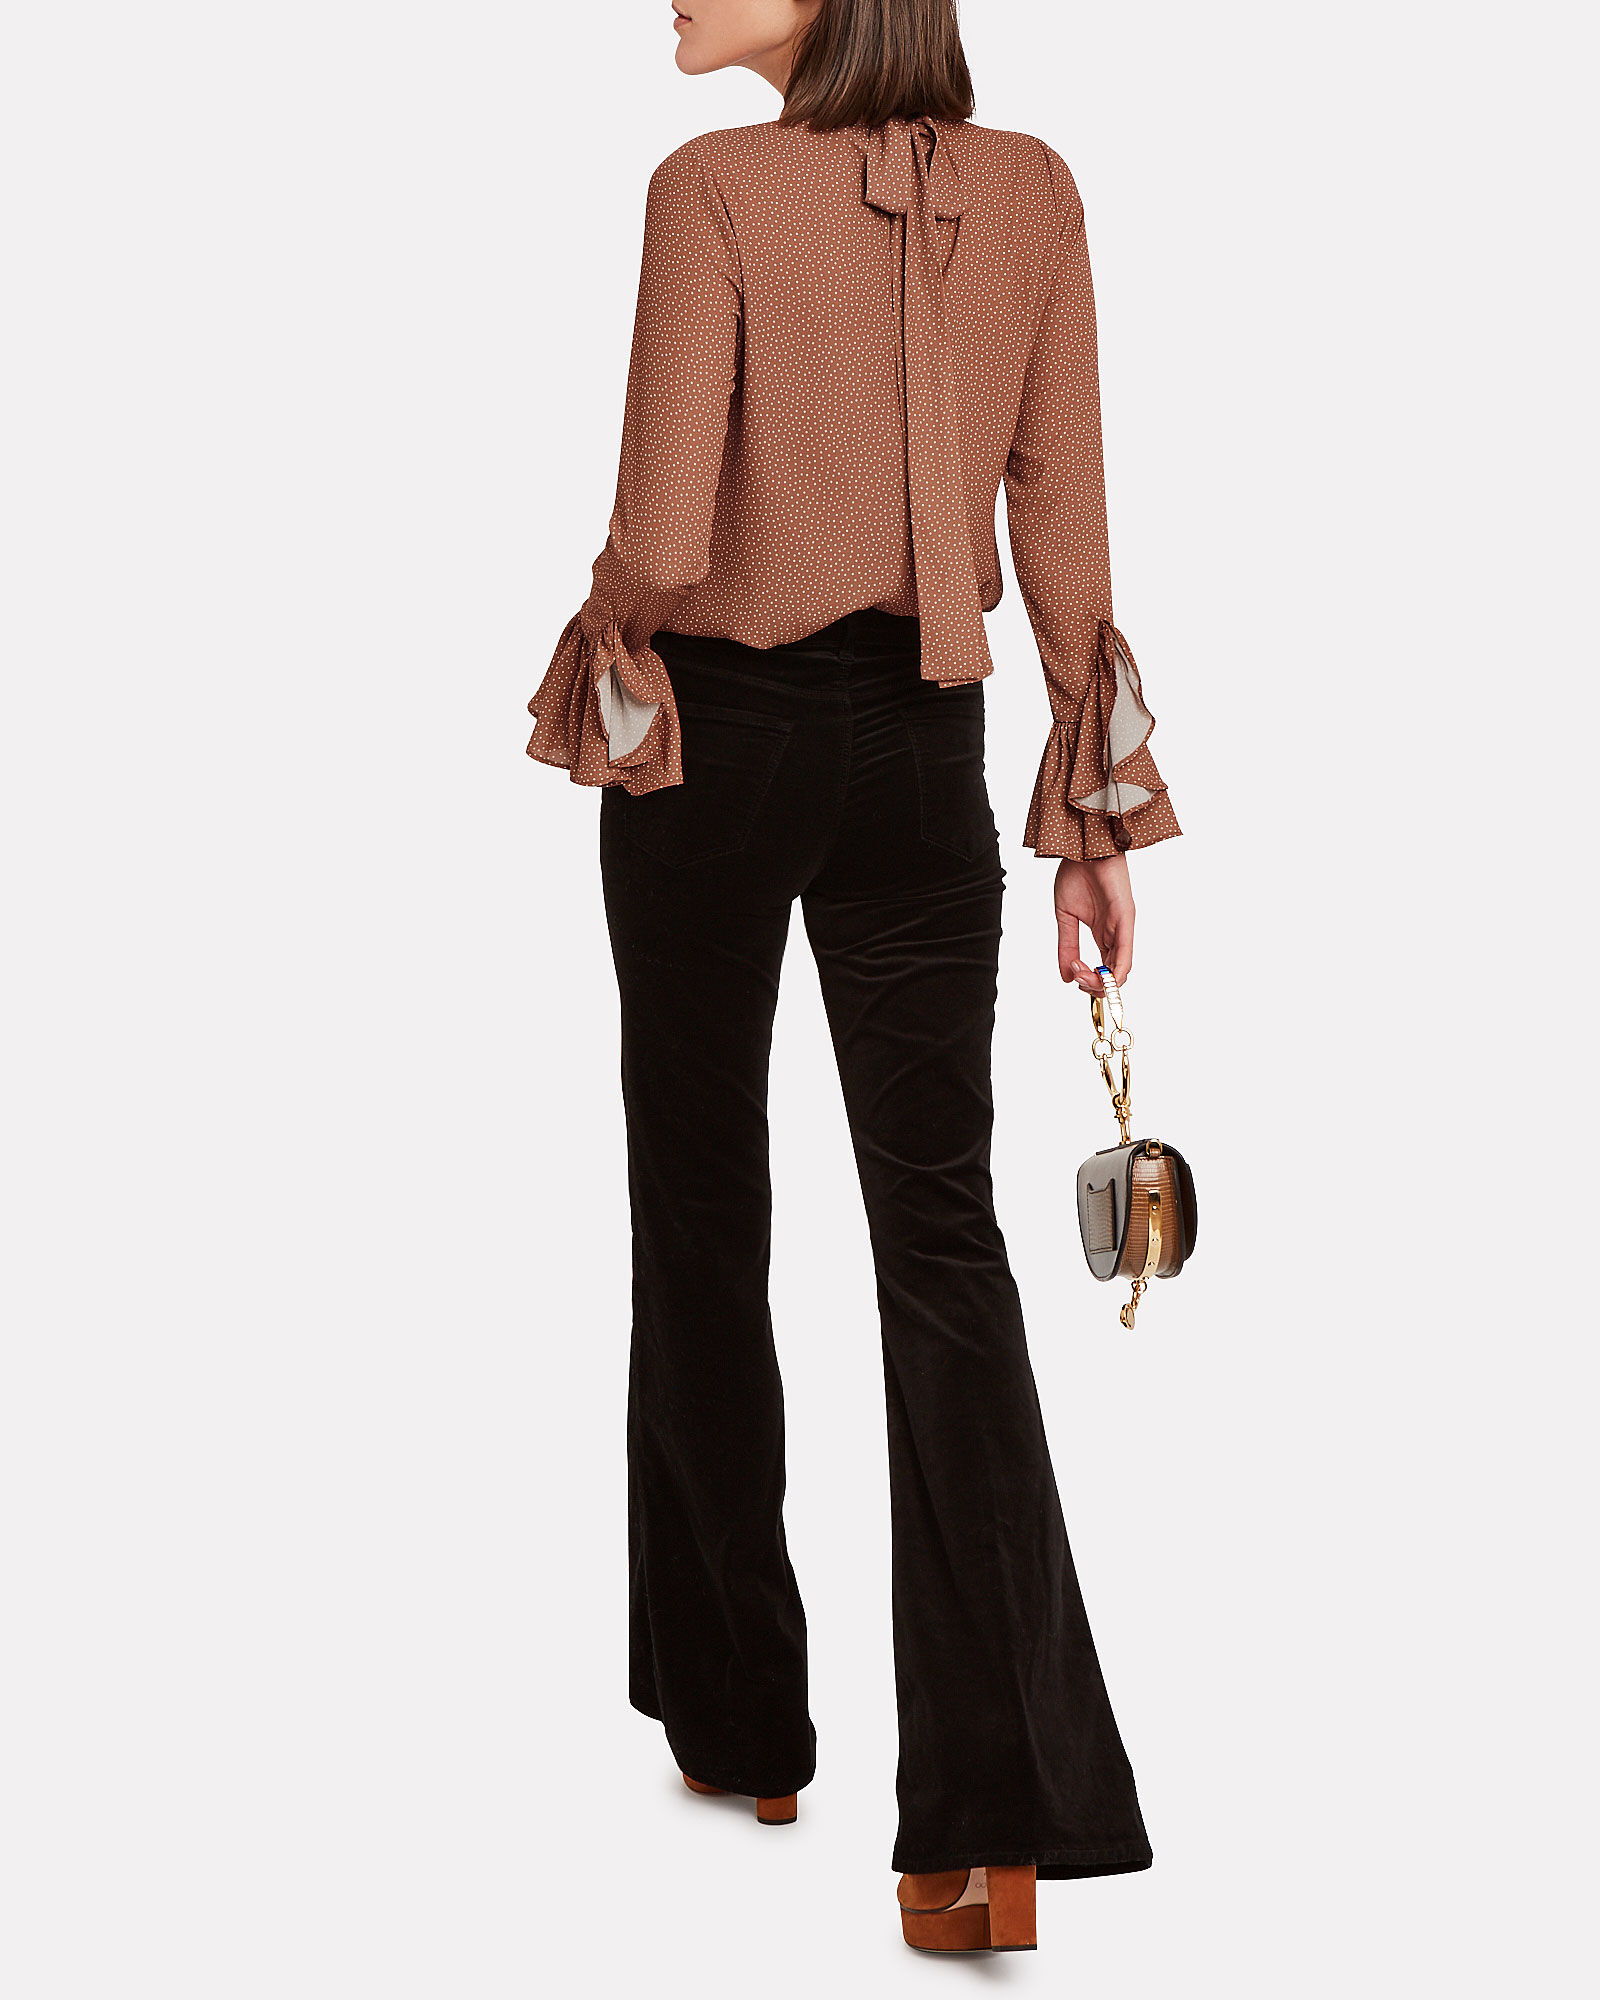 Odellia Tie-Neck Satin Blouse, SPOTTED SIENNA, hi-res